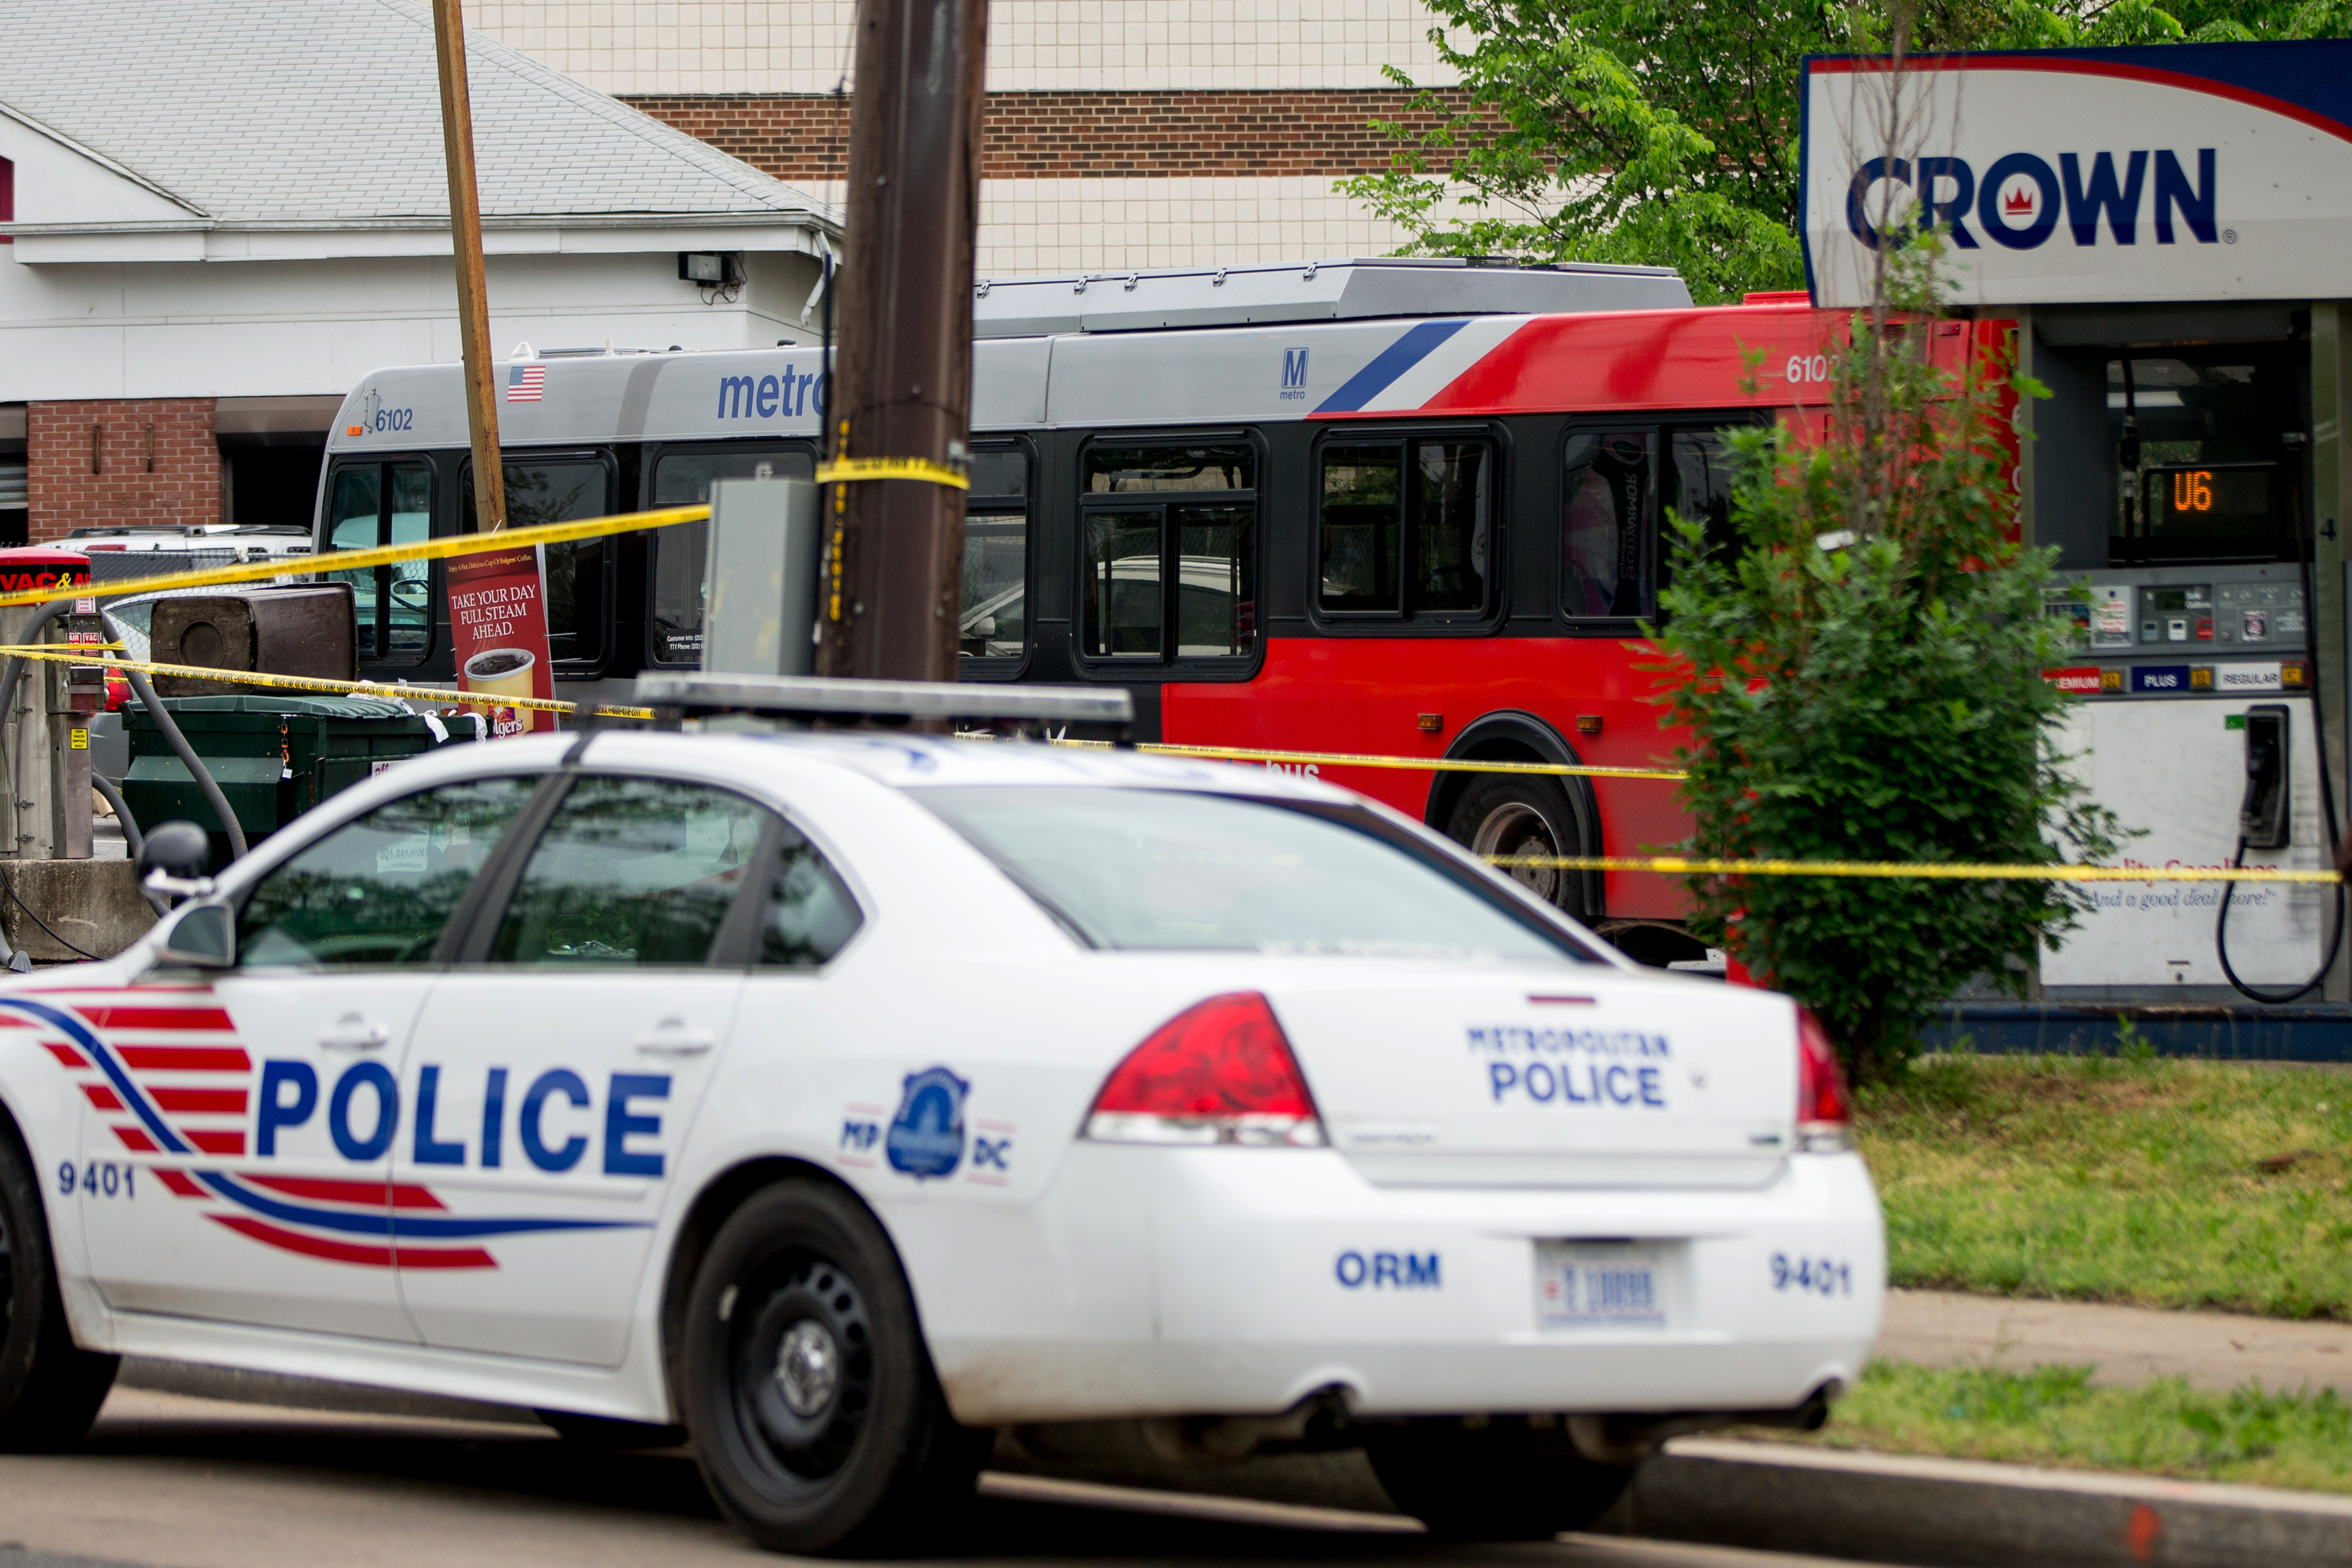 Man charged with killing pedestrian took drugs before hijacking bus